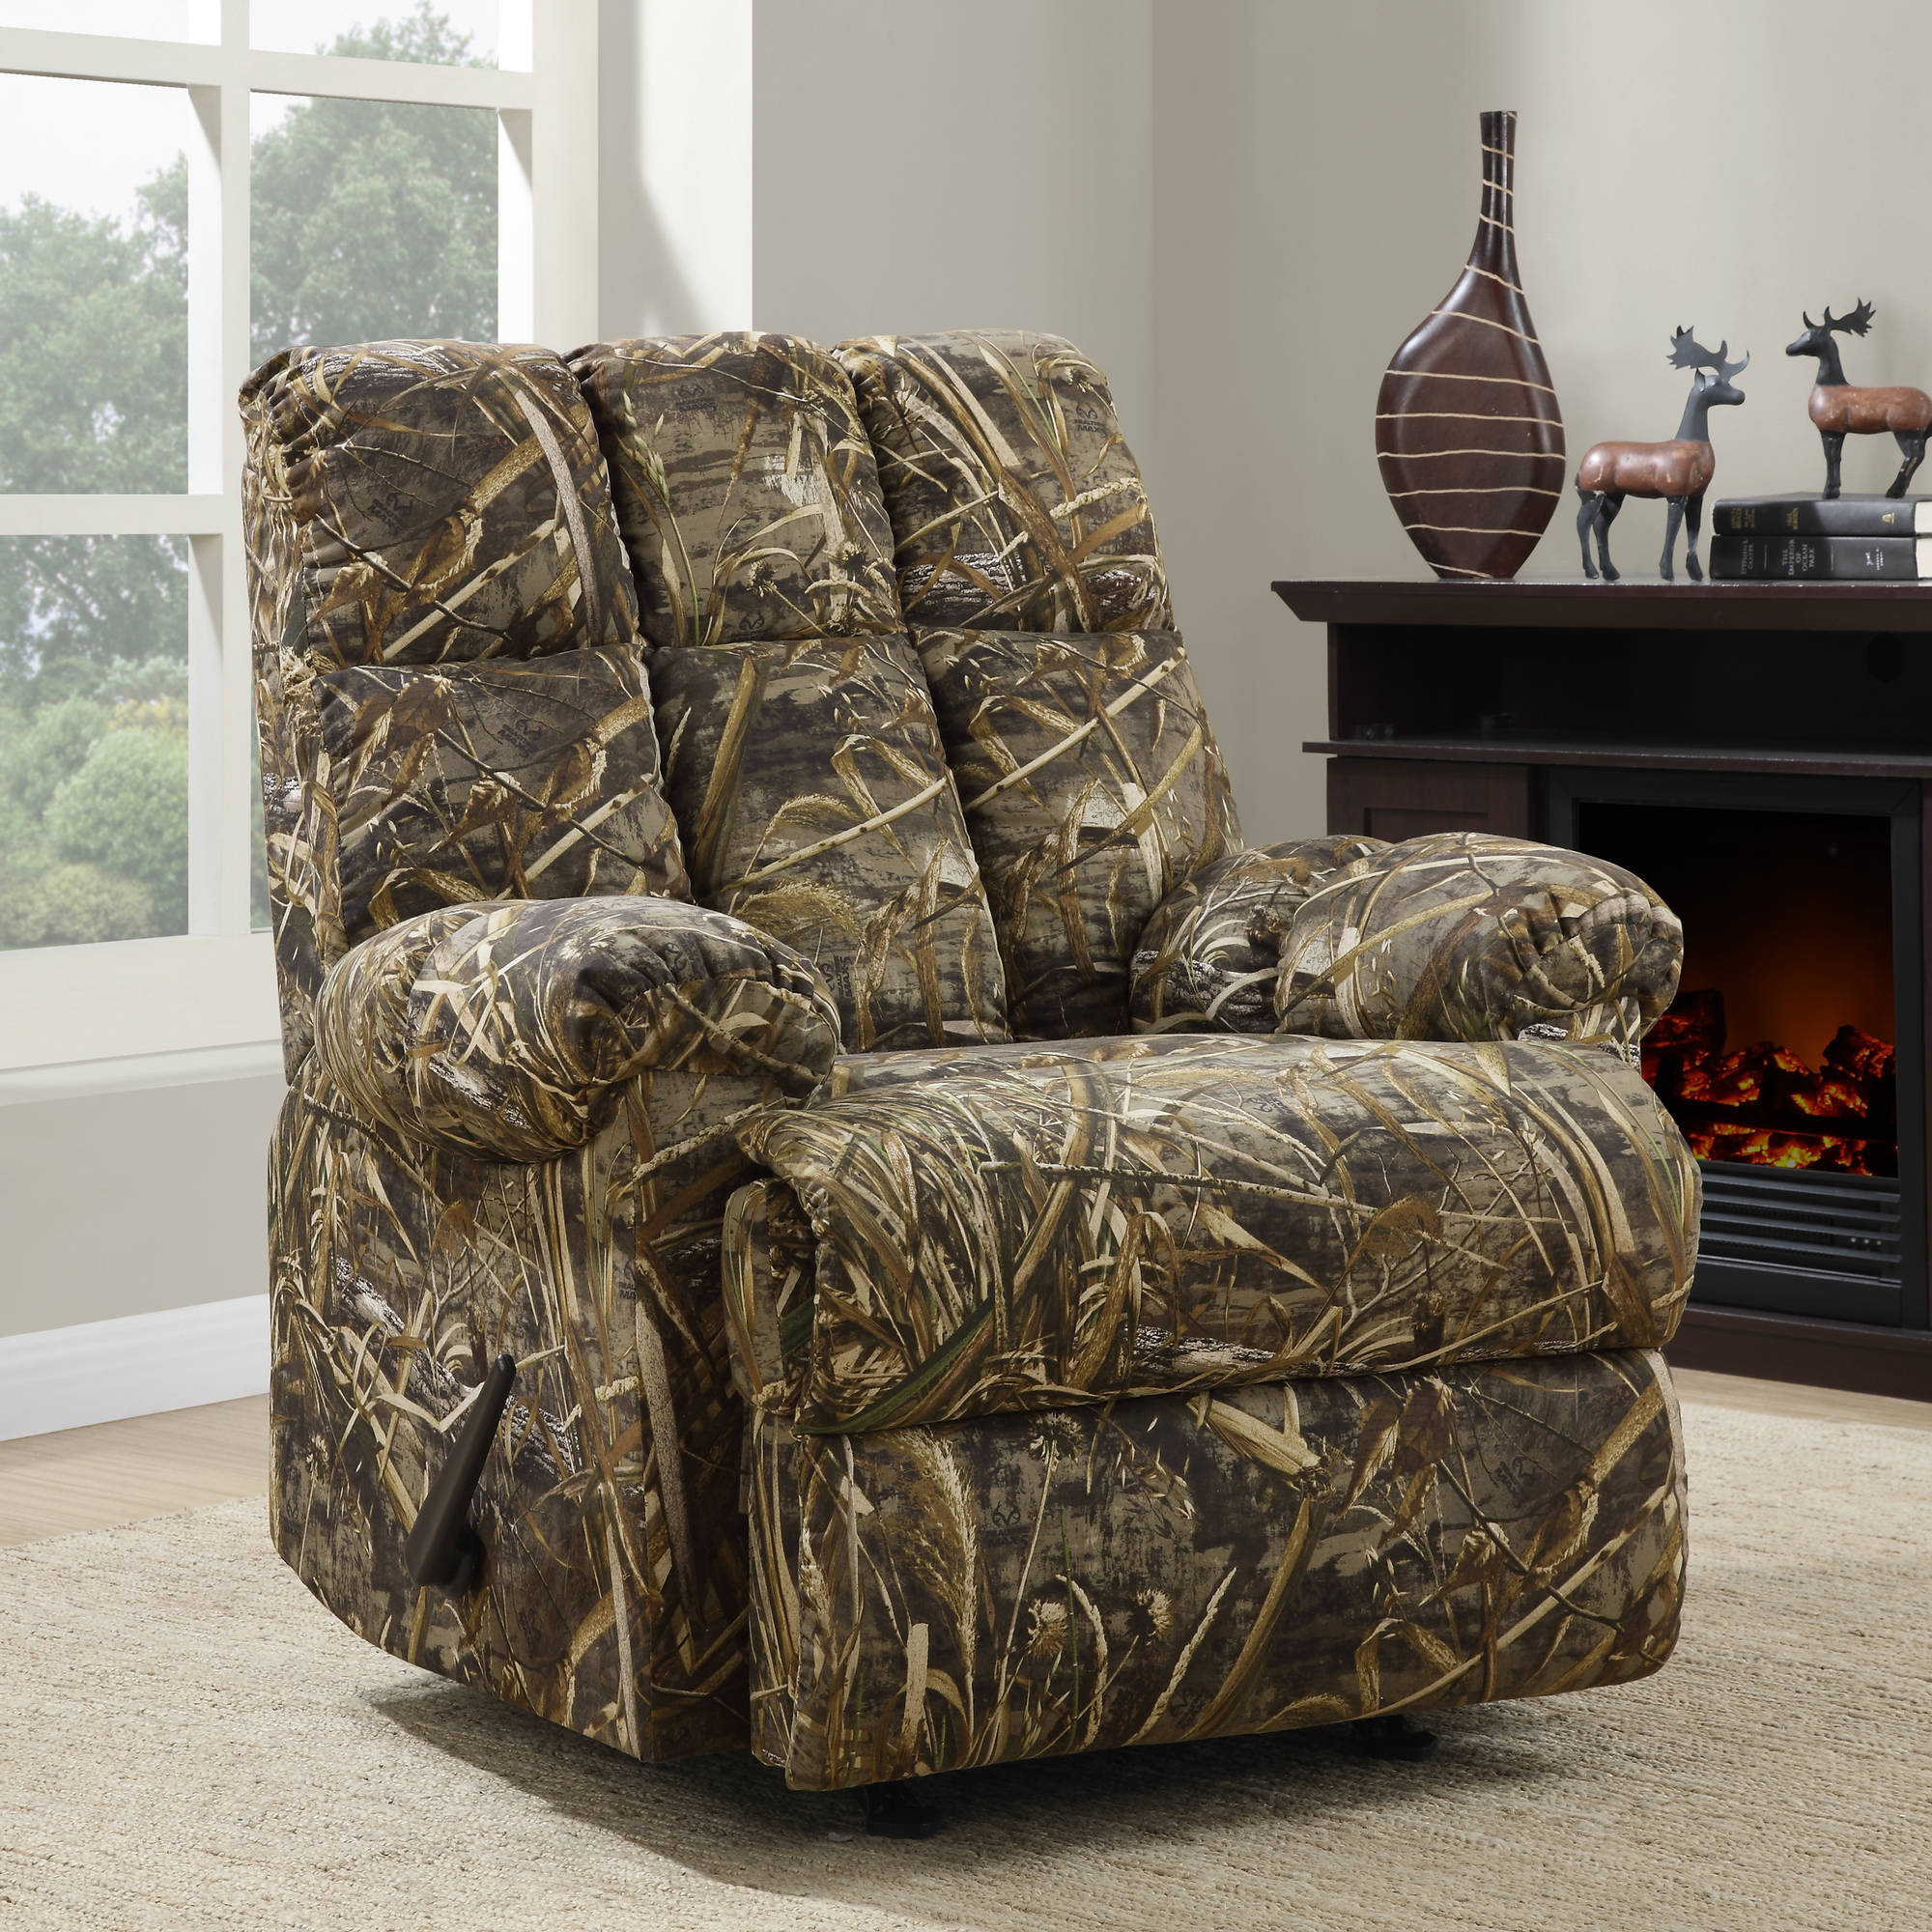 couch max com furniture realtree camo walmart bed ip pet